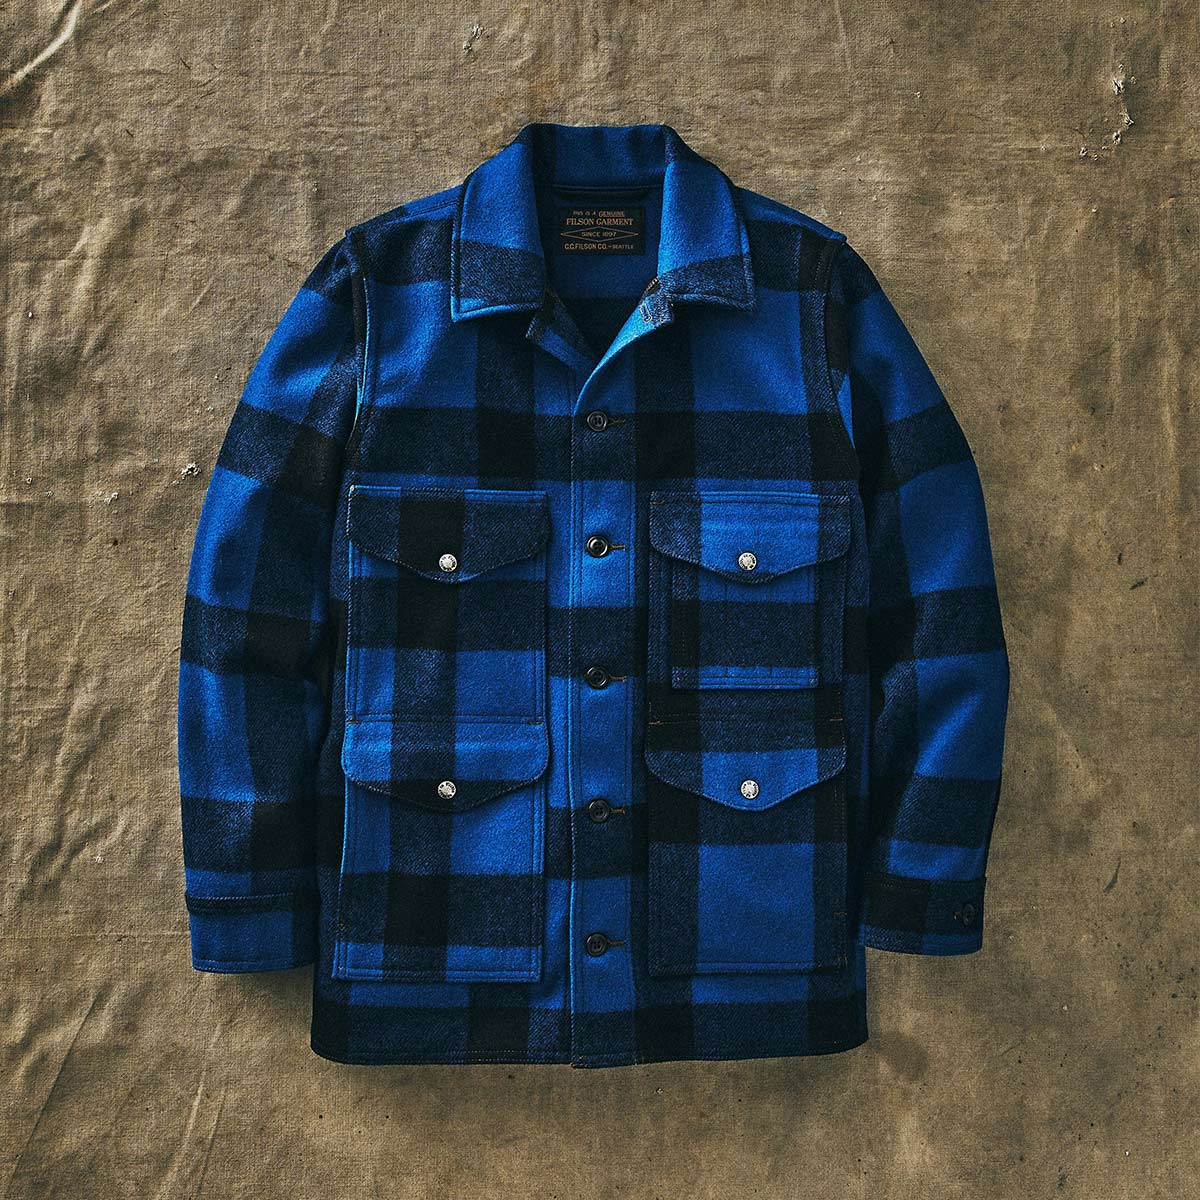 Filson Mackinaw Cruiser Jacket Cobalt Black